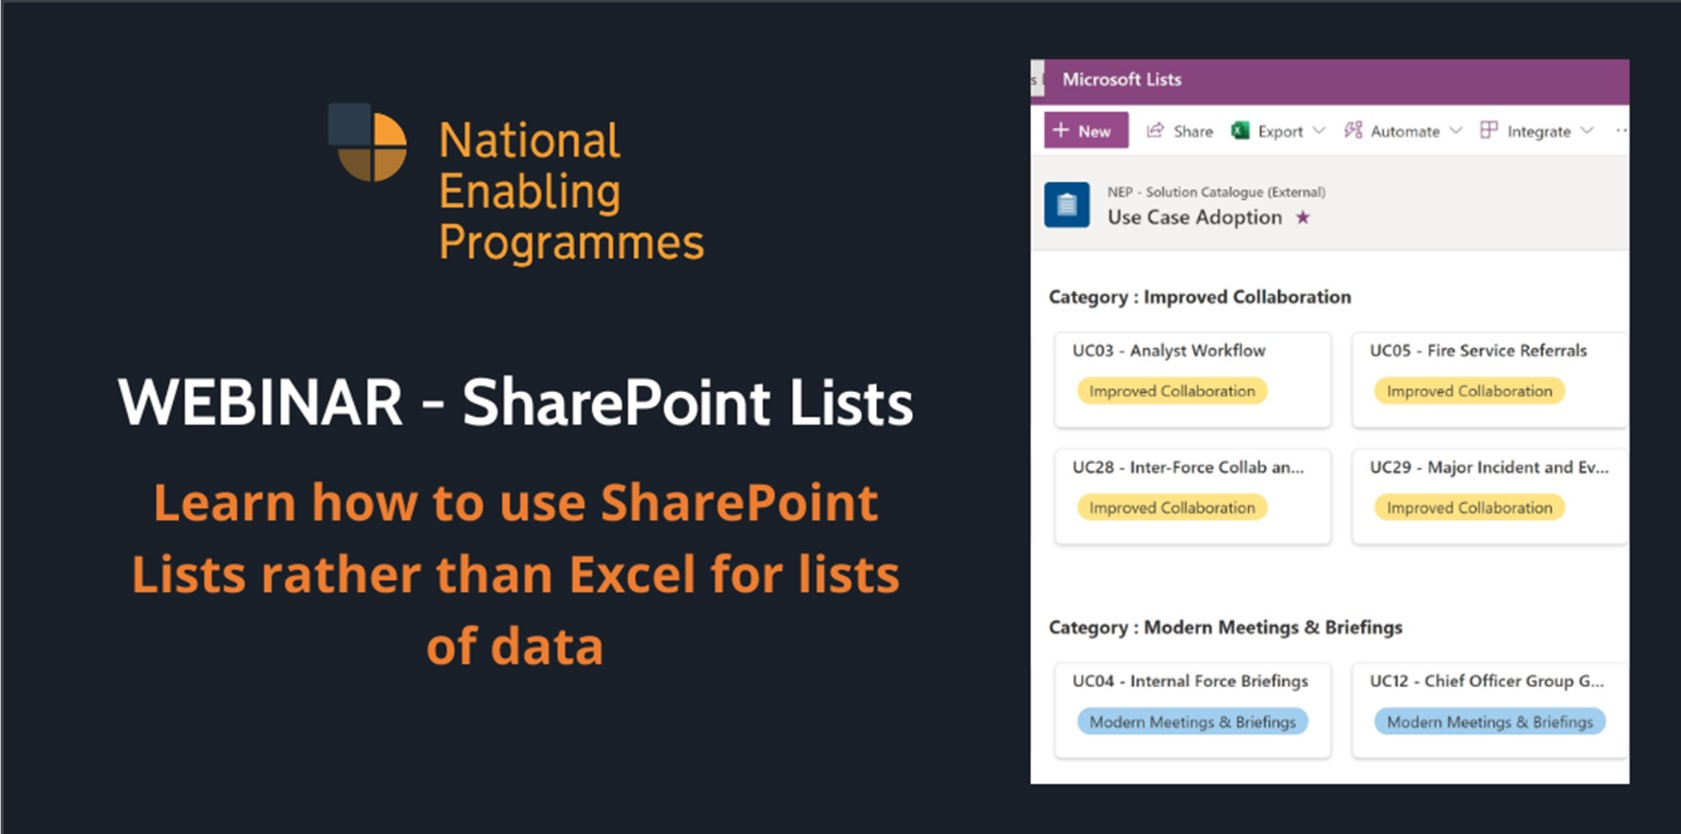 Banner promoting the use of SharePoint Lists